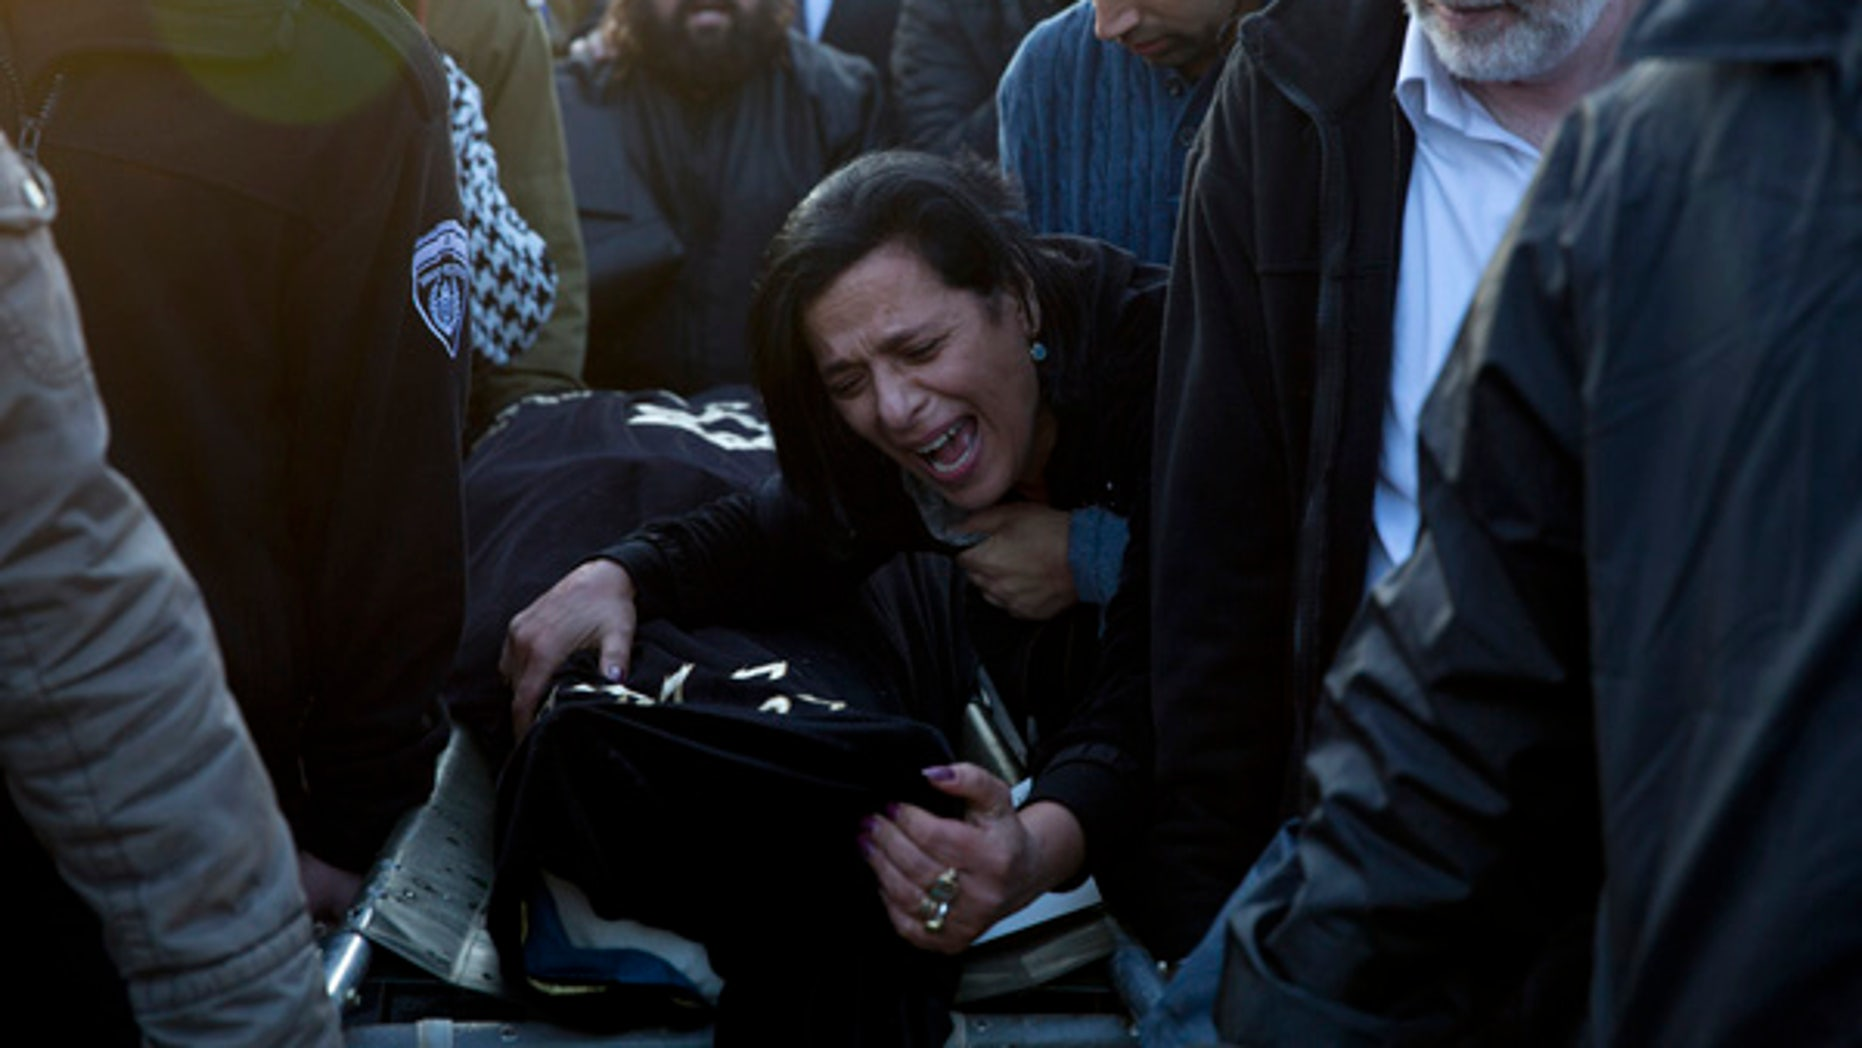 Jan. 3, 2016: Nitza Bakal, mother of Alon Bakal, center, who was killed when a gunman opened fire at a bar in Tel Aviv on Friday, mourn over his body during his funeral in Carmiel, northern Israel.